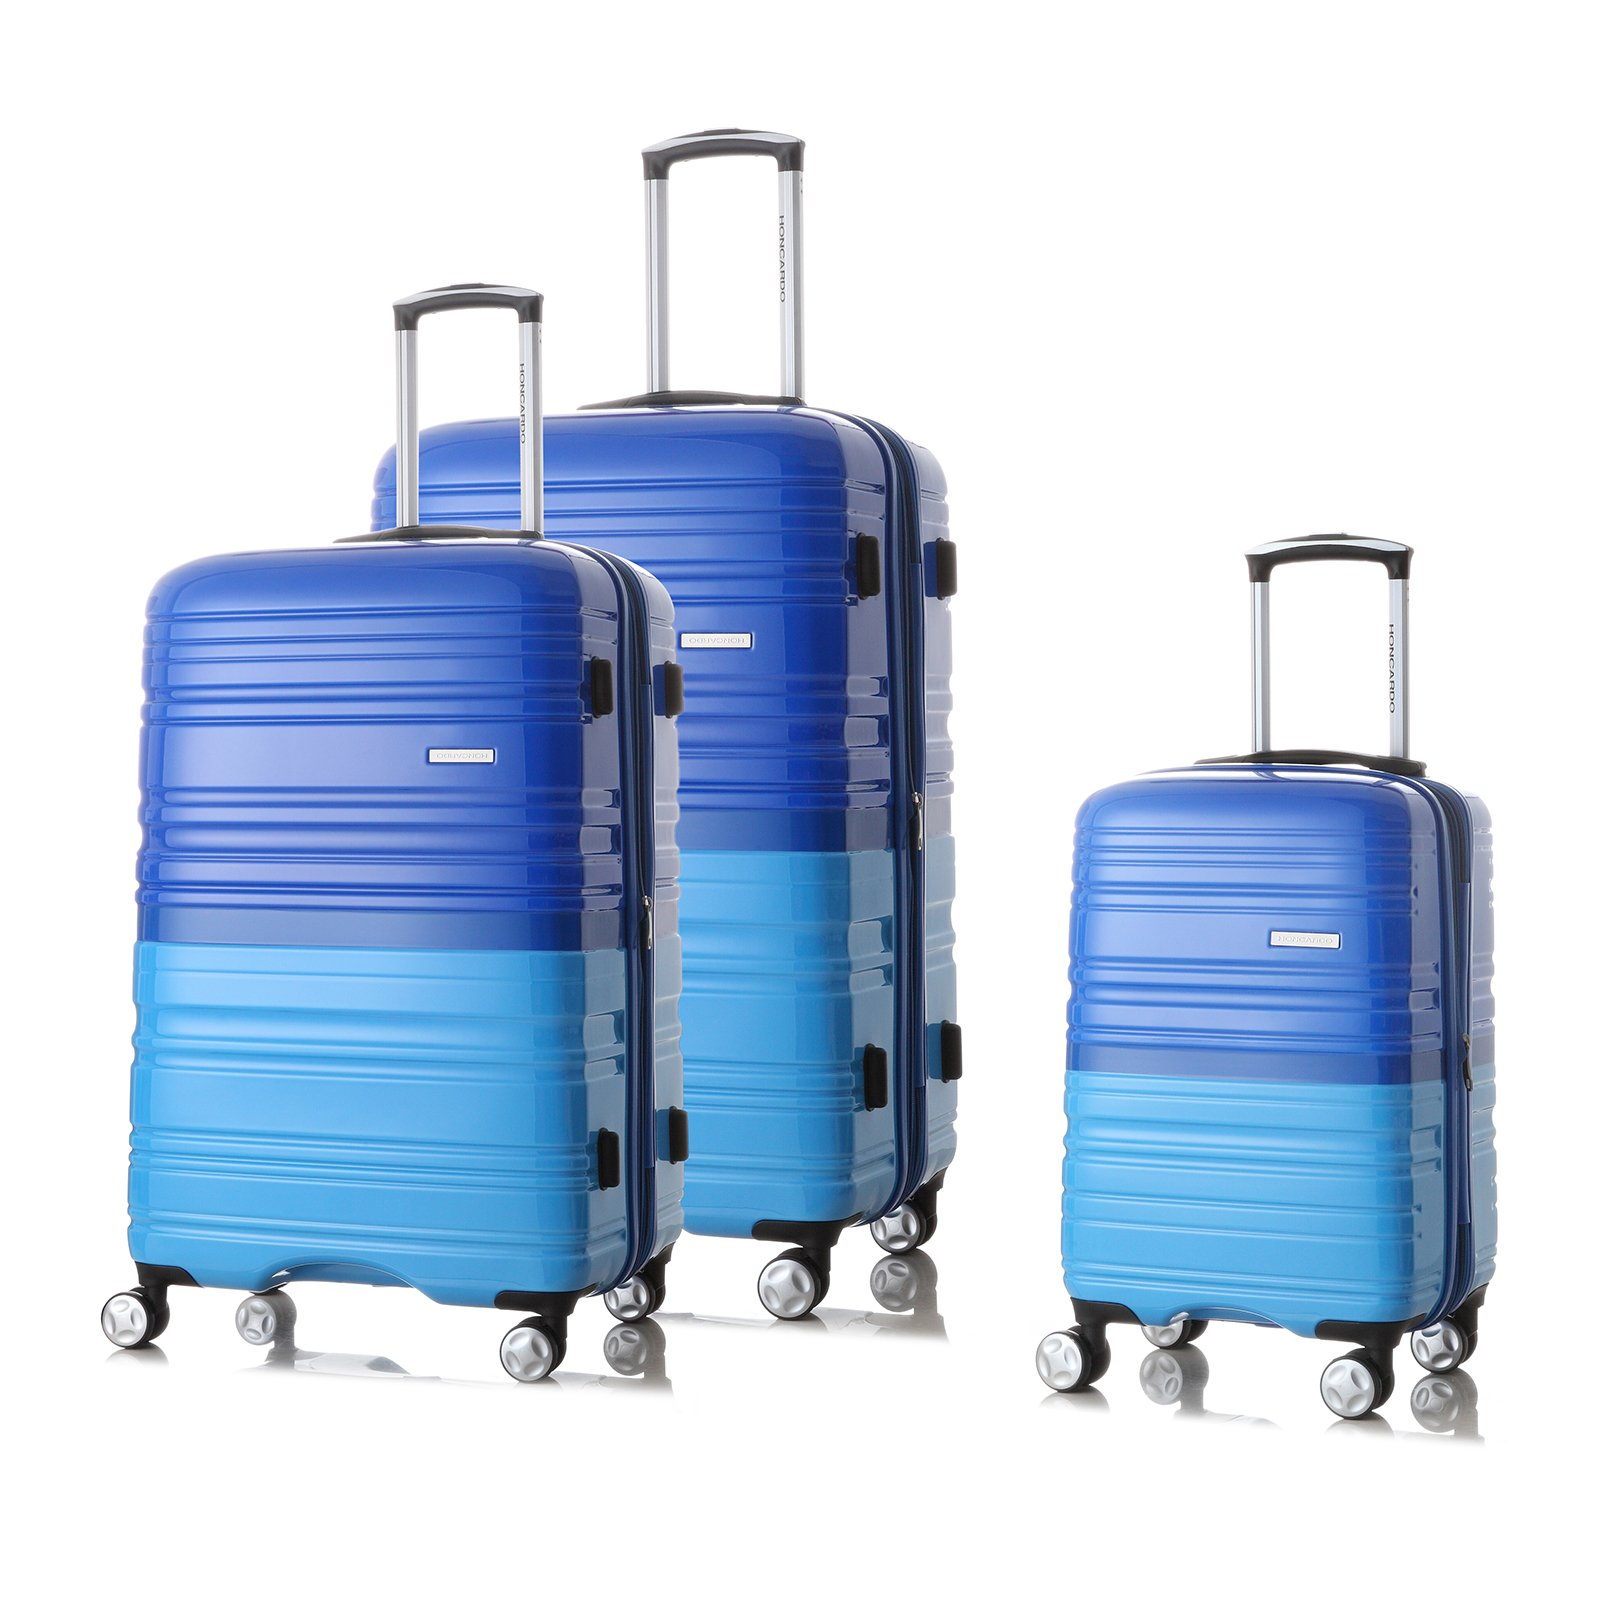 HONCARDO Luggage Sets Bi-color Hardshell Lightweight Spinner Suitcase (20'', 24''& 28'') with TSA, Navy&Blue by HONCARDO